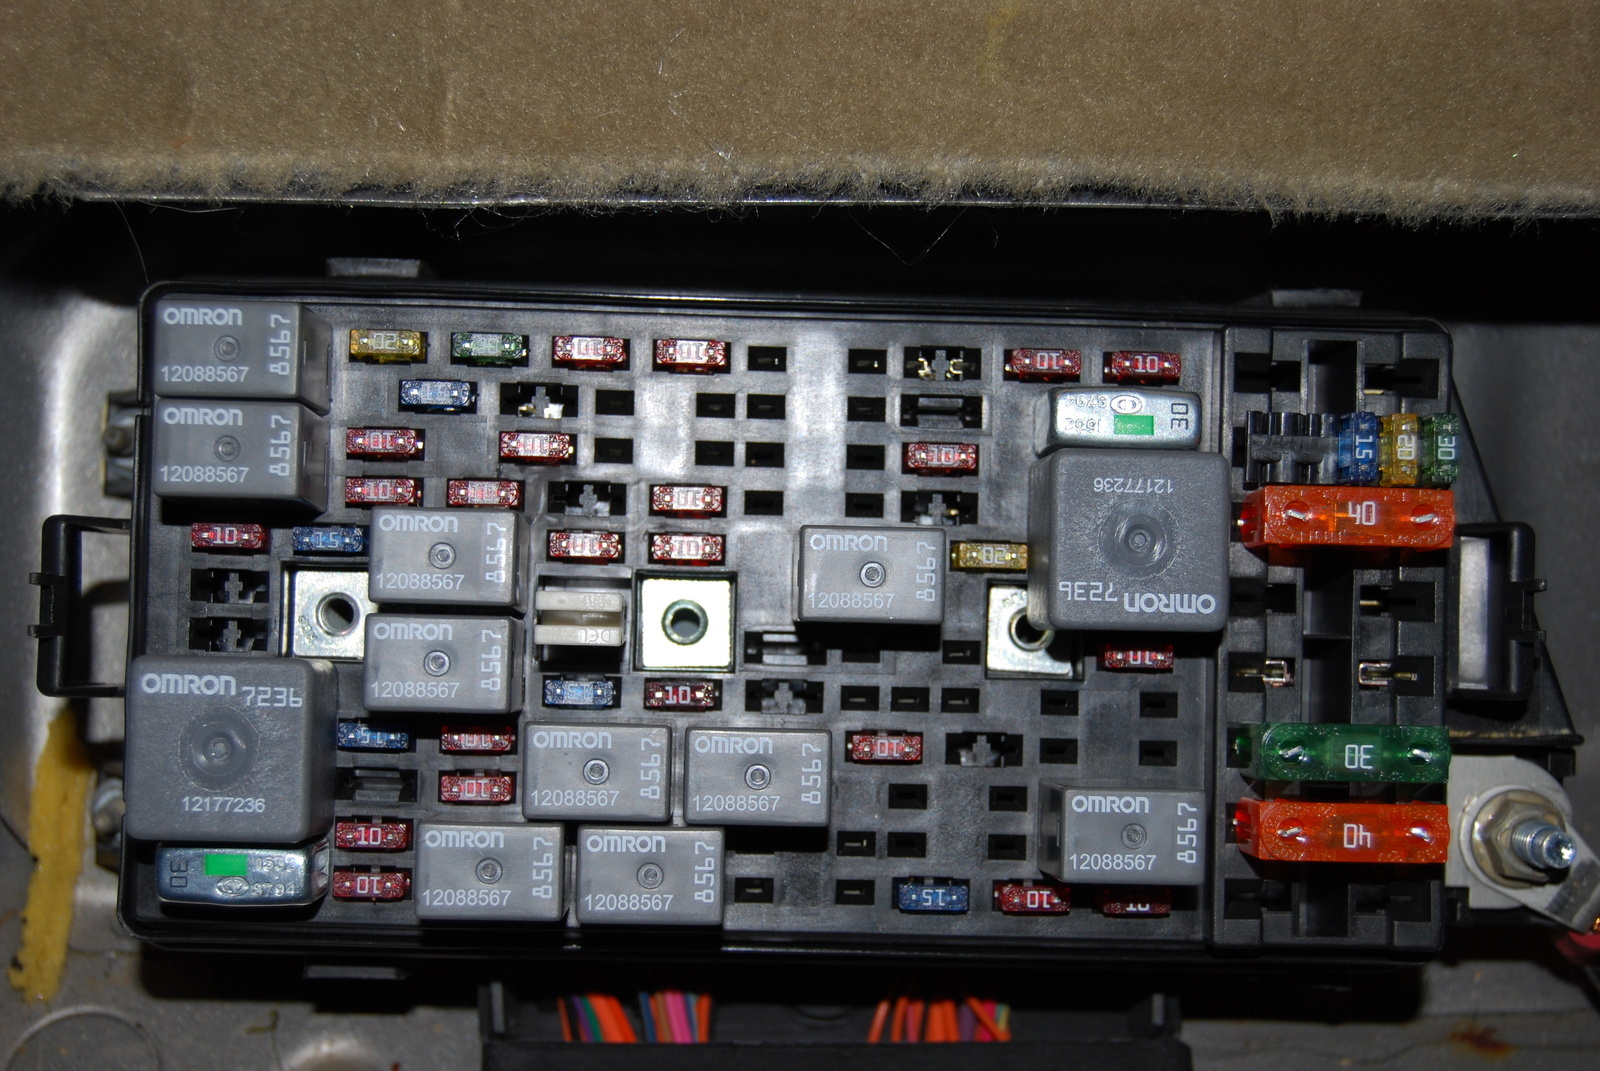 1984 Ford Bronco Fuse Box Diagram besides 3 8 Liter Ford Engine Diagram further P 0996b43f80cb0f6e furthermore Watch further Temp Sensor Mitsubishi Galant Fuse Box Diagram Wiring Diagrams. on 1990 ford f150 fuse box location